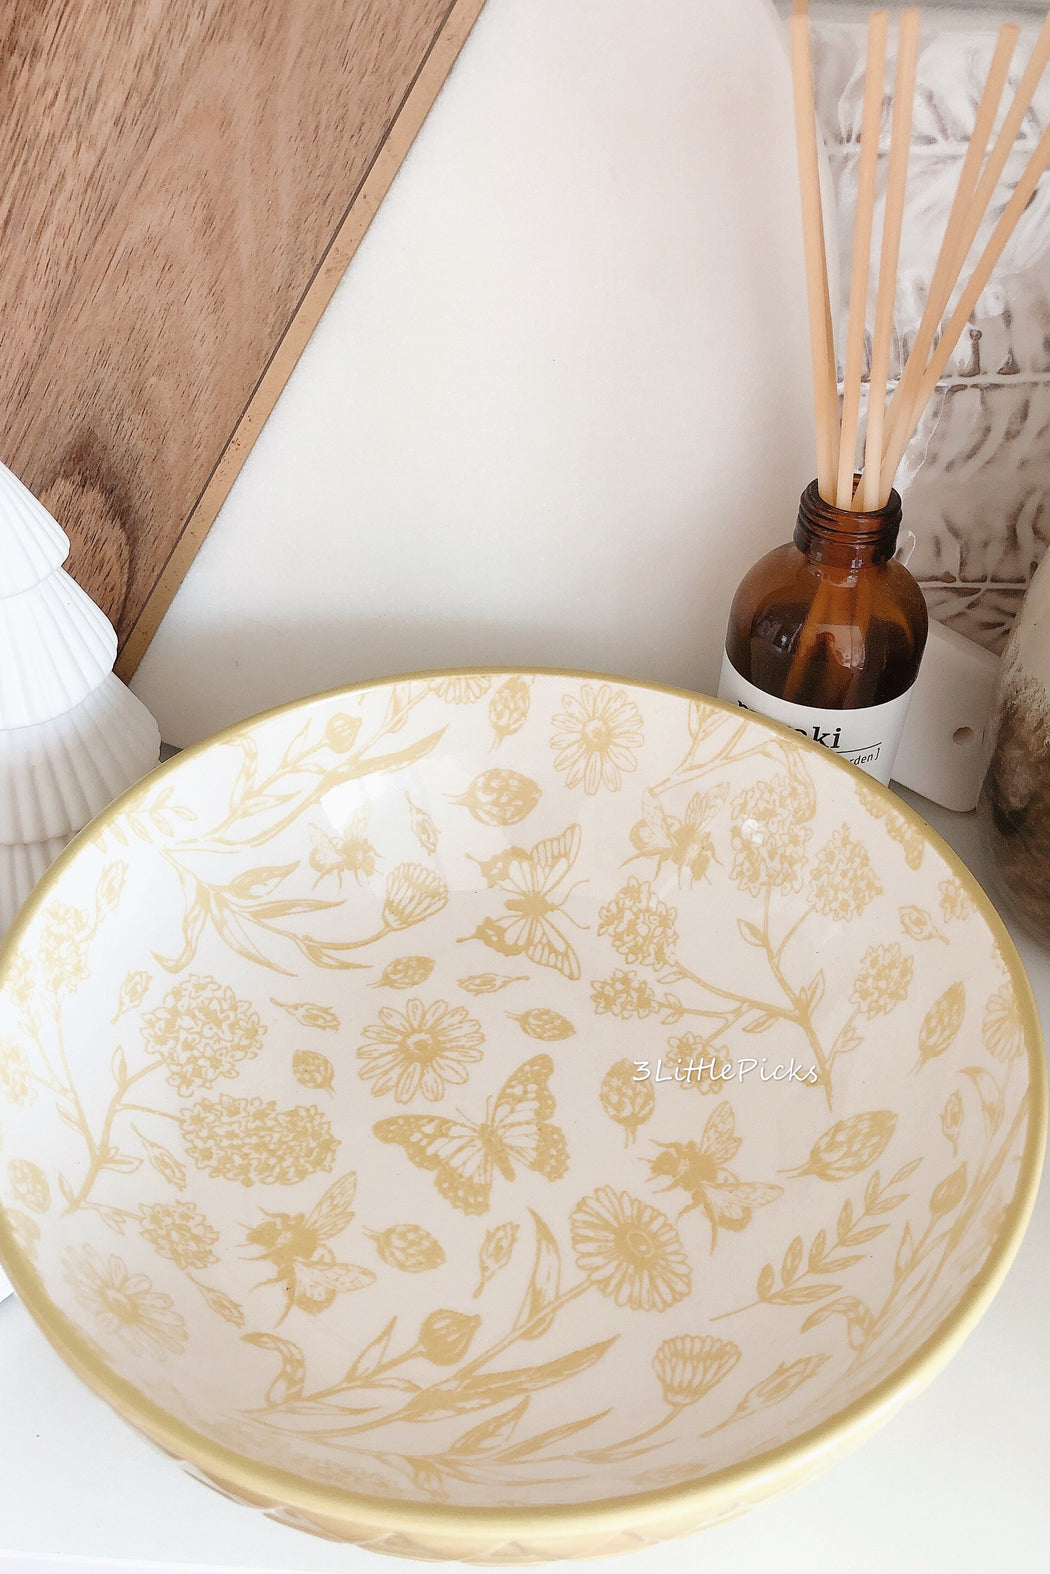 PRE-ORDER: Pastel Mustard Green Soup Plate